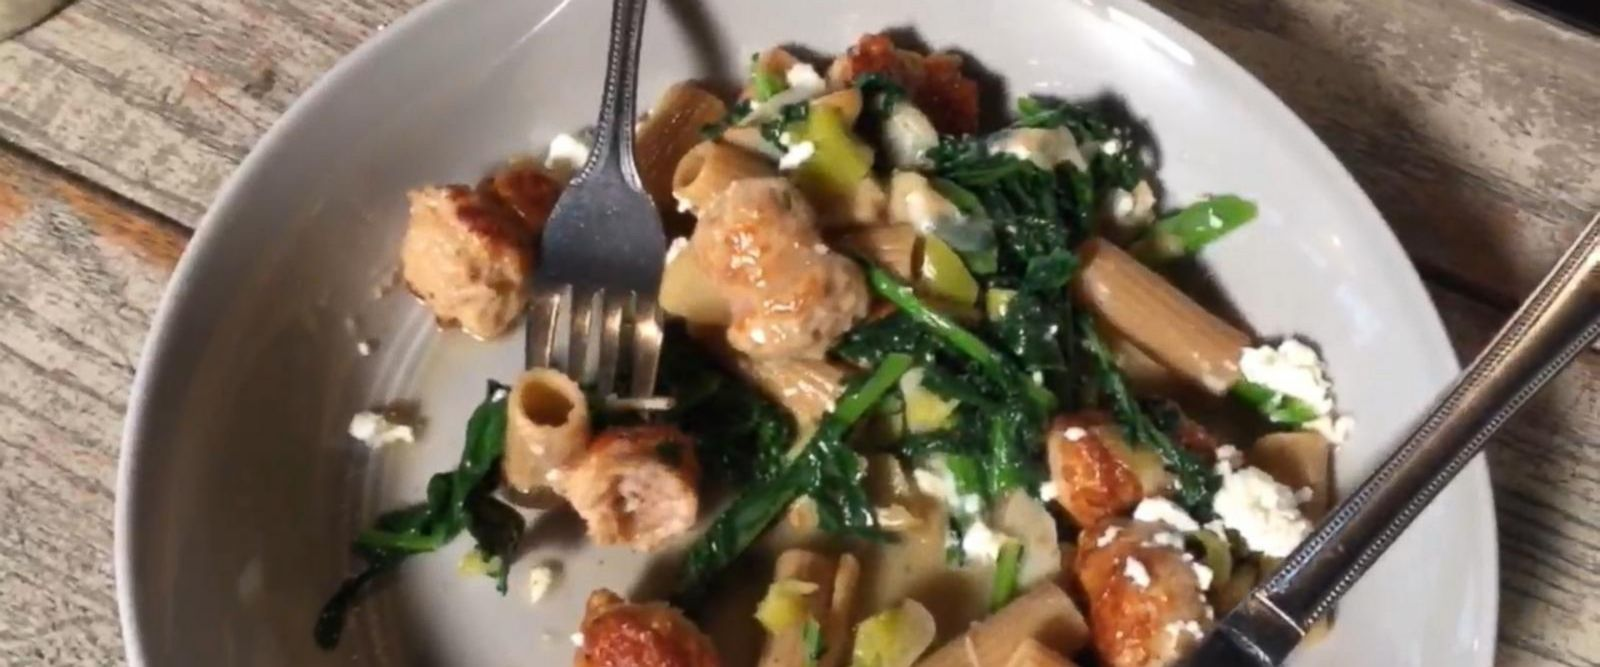 VIDEO: How to Make Rigatoni With Chicken Sausage and Broccoli Rabe